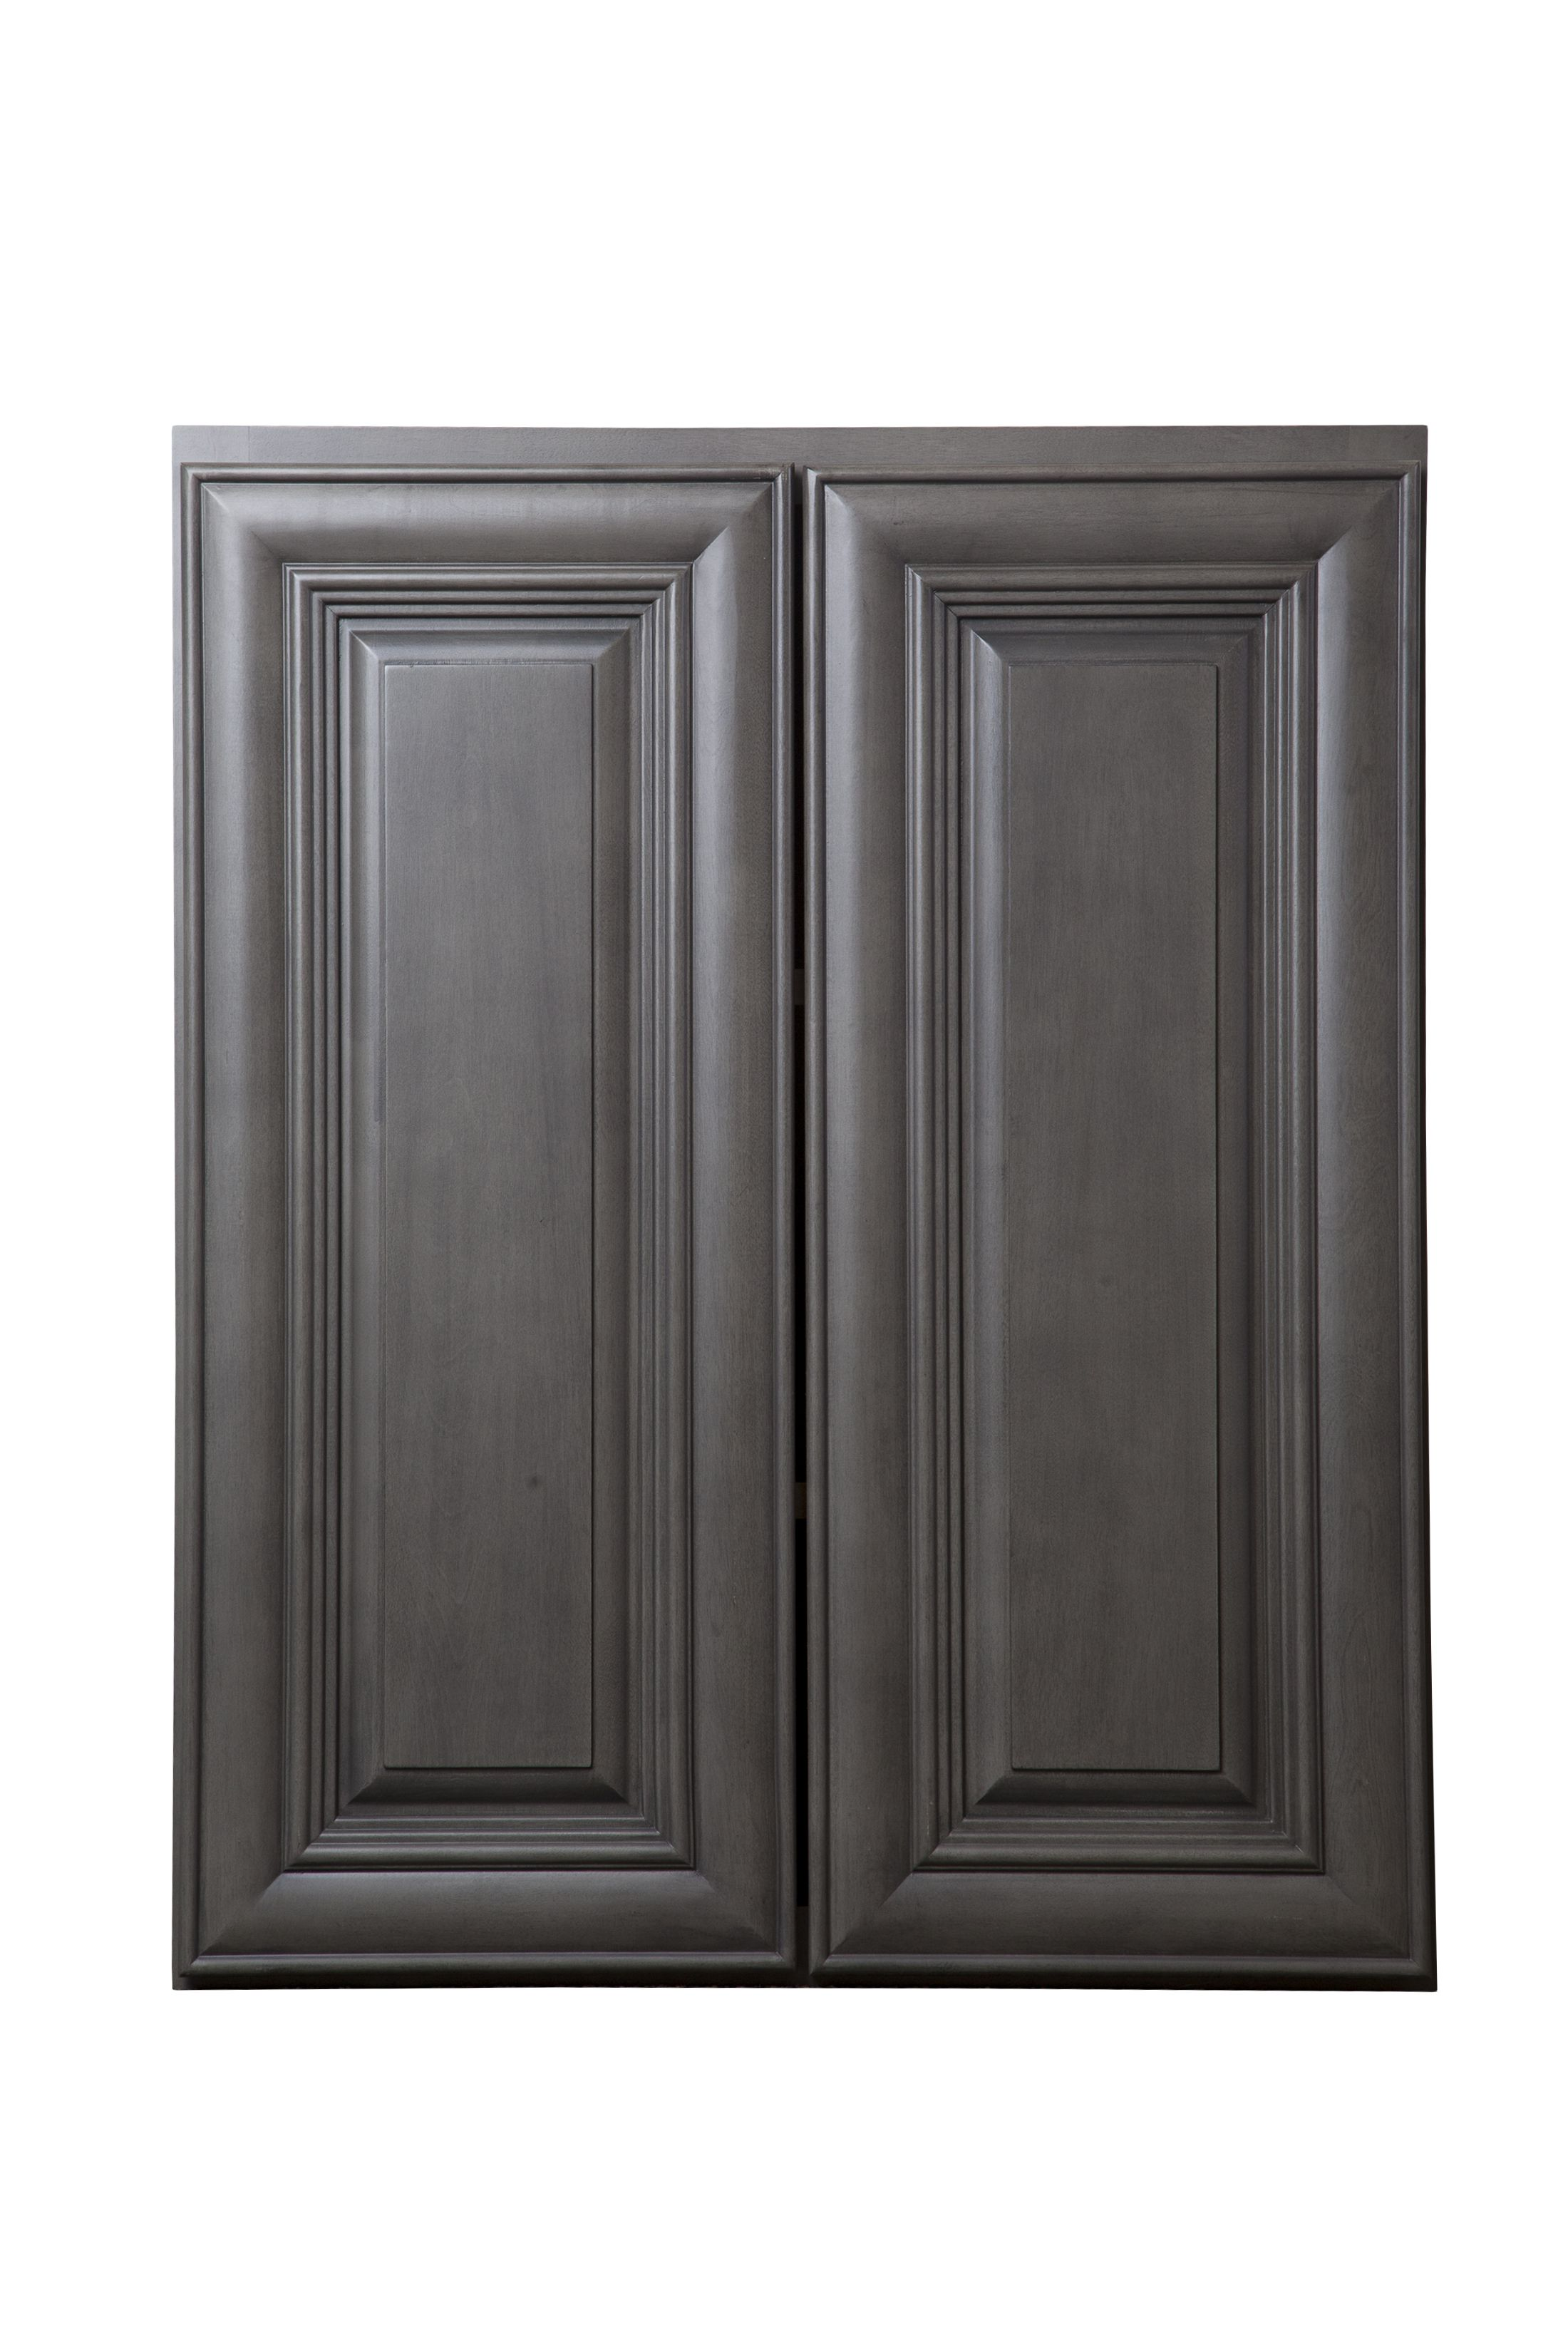 Kensington Kitchen Cabinets: Kensington Mist Grey Kitchen Cabinets, Perfect With Orange